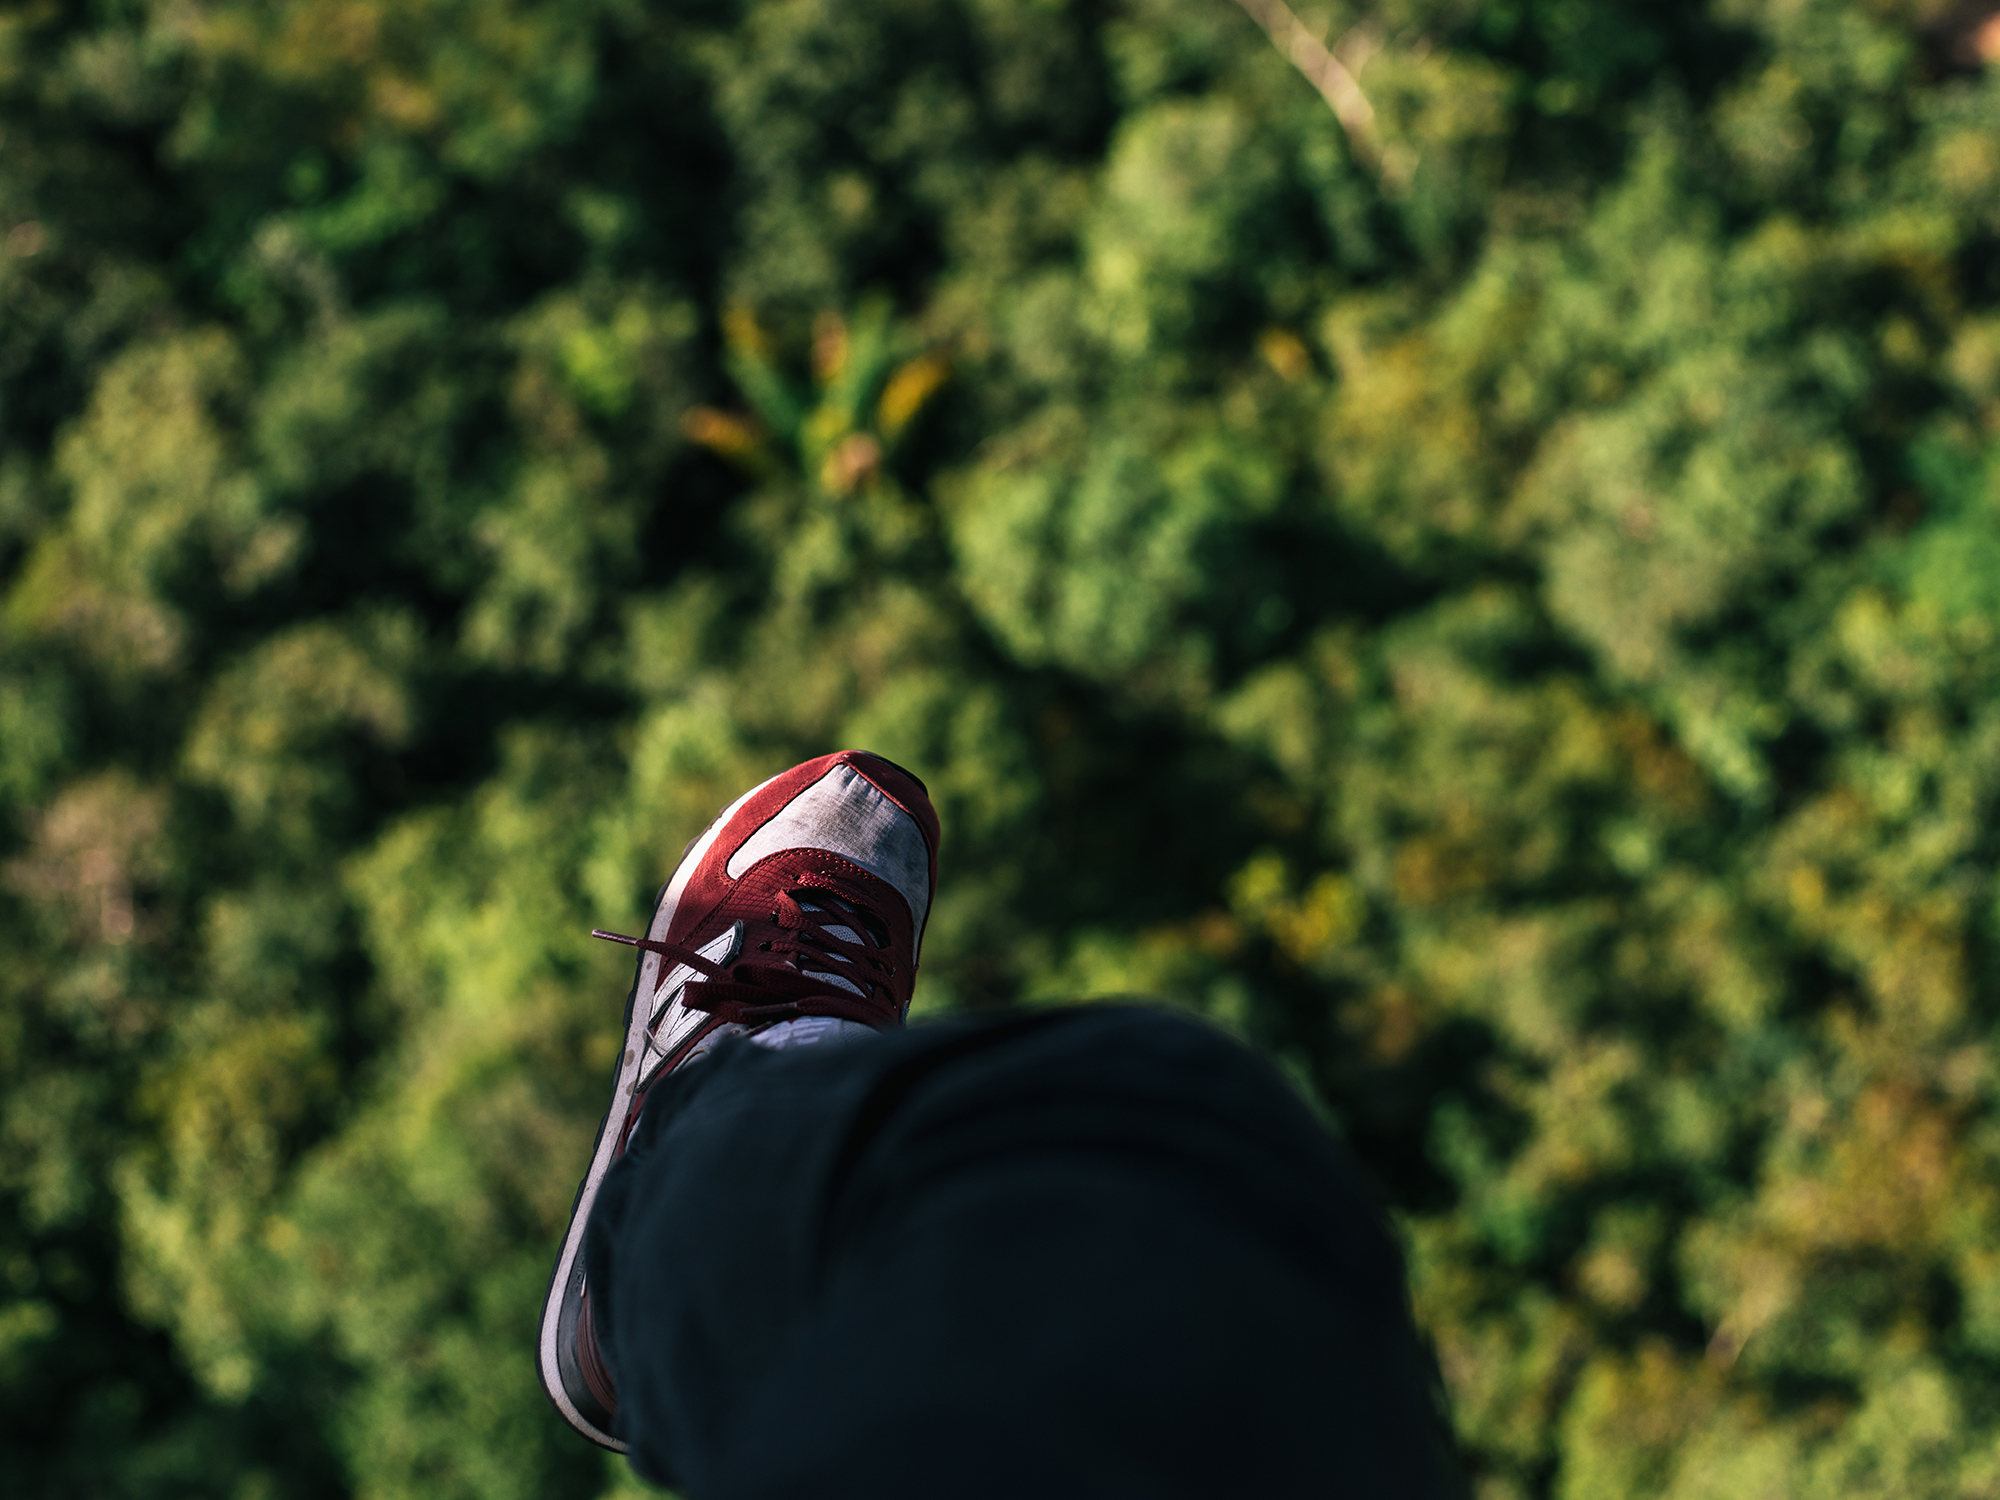 Hanging out over the rainforest.